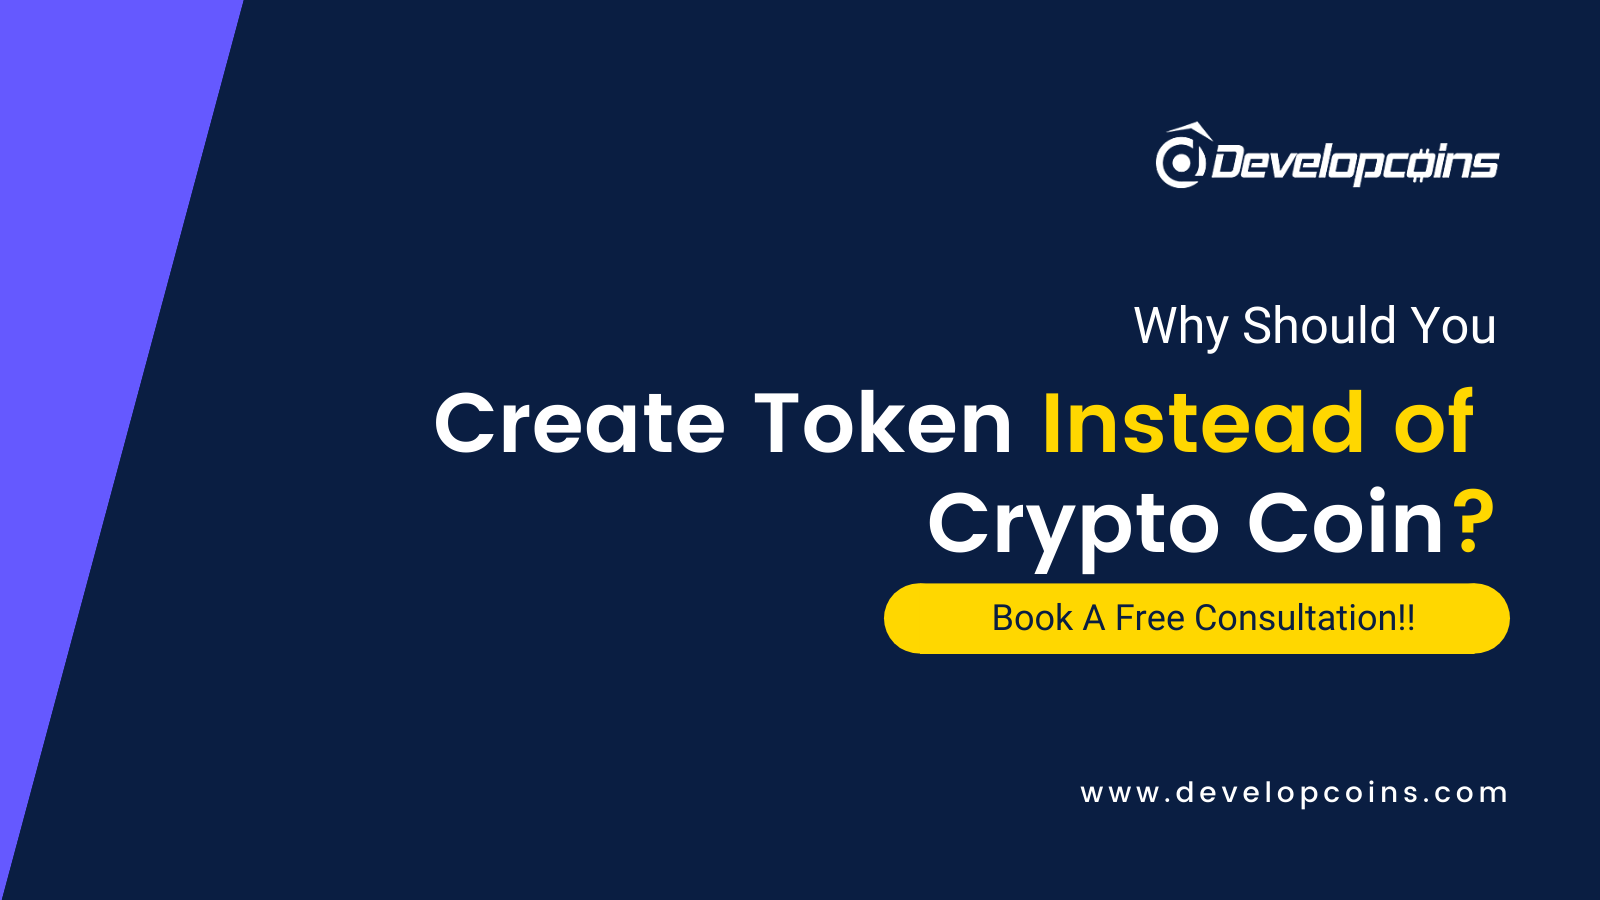 Why Need To Create Crypto Token instead of Coin?